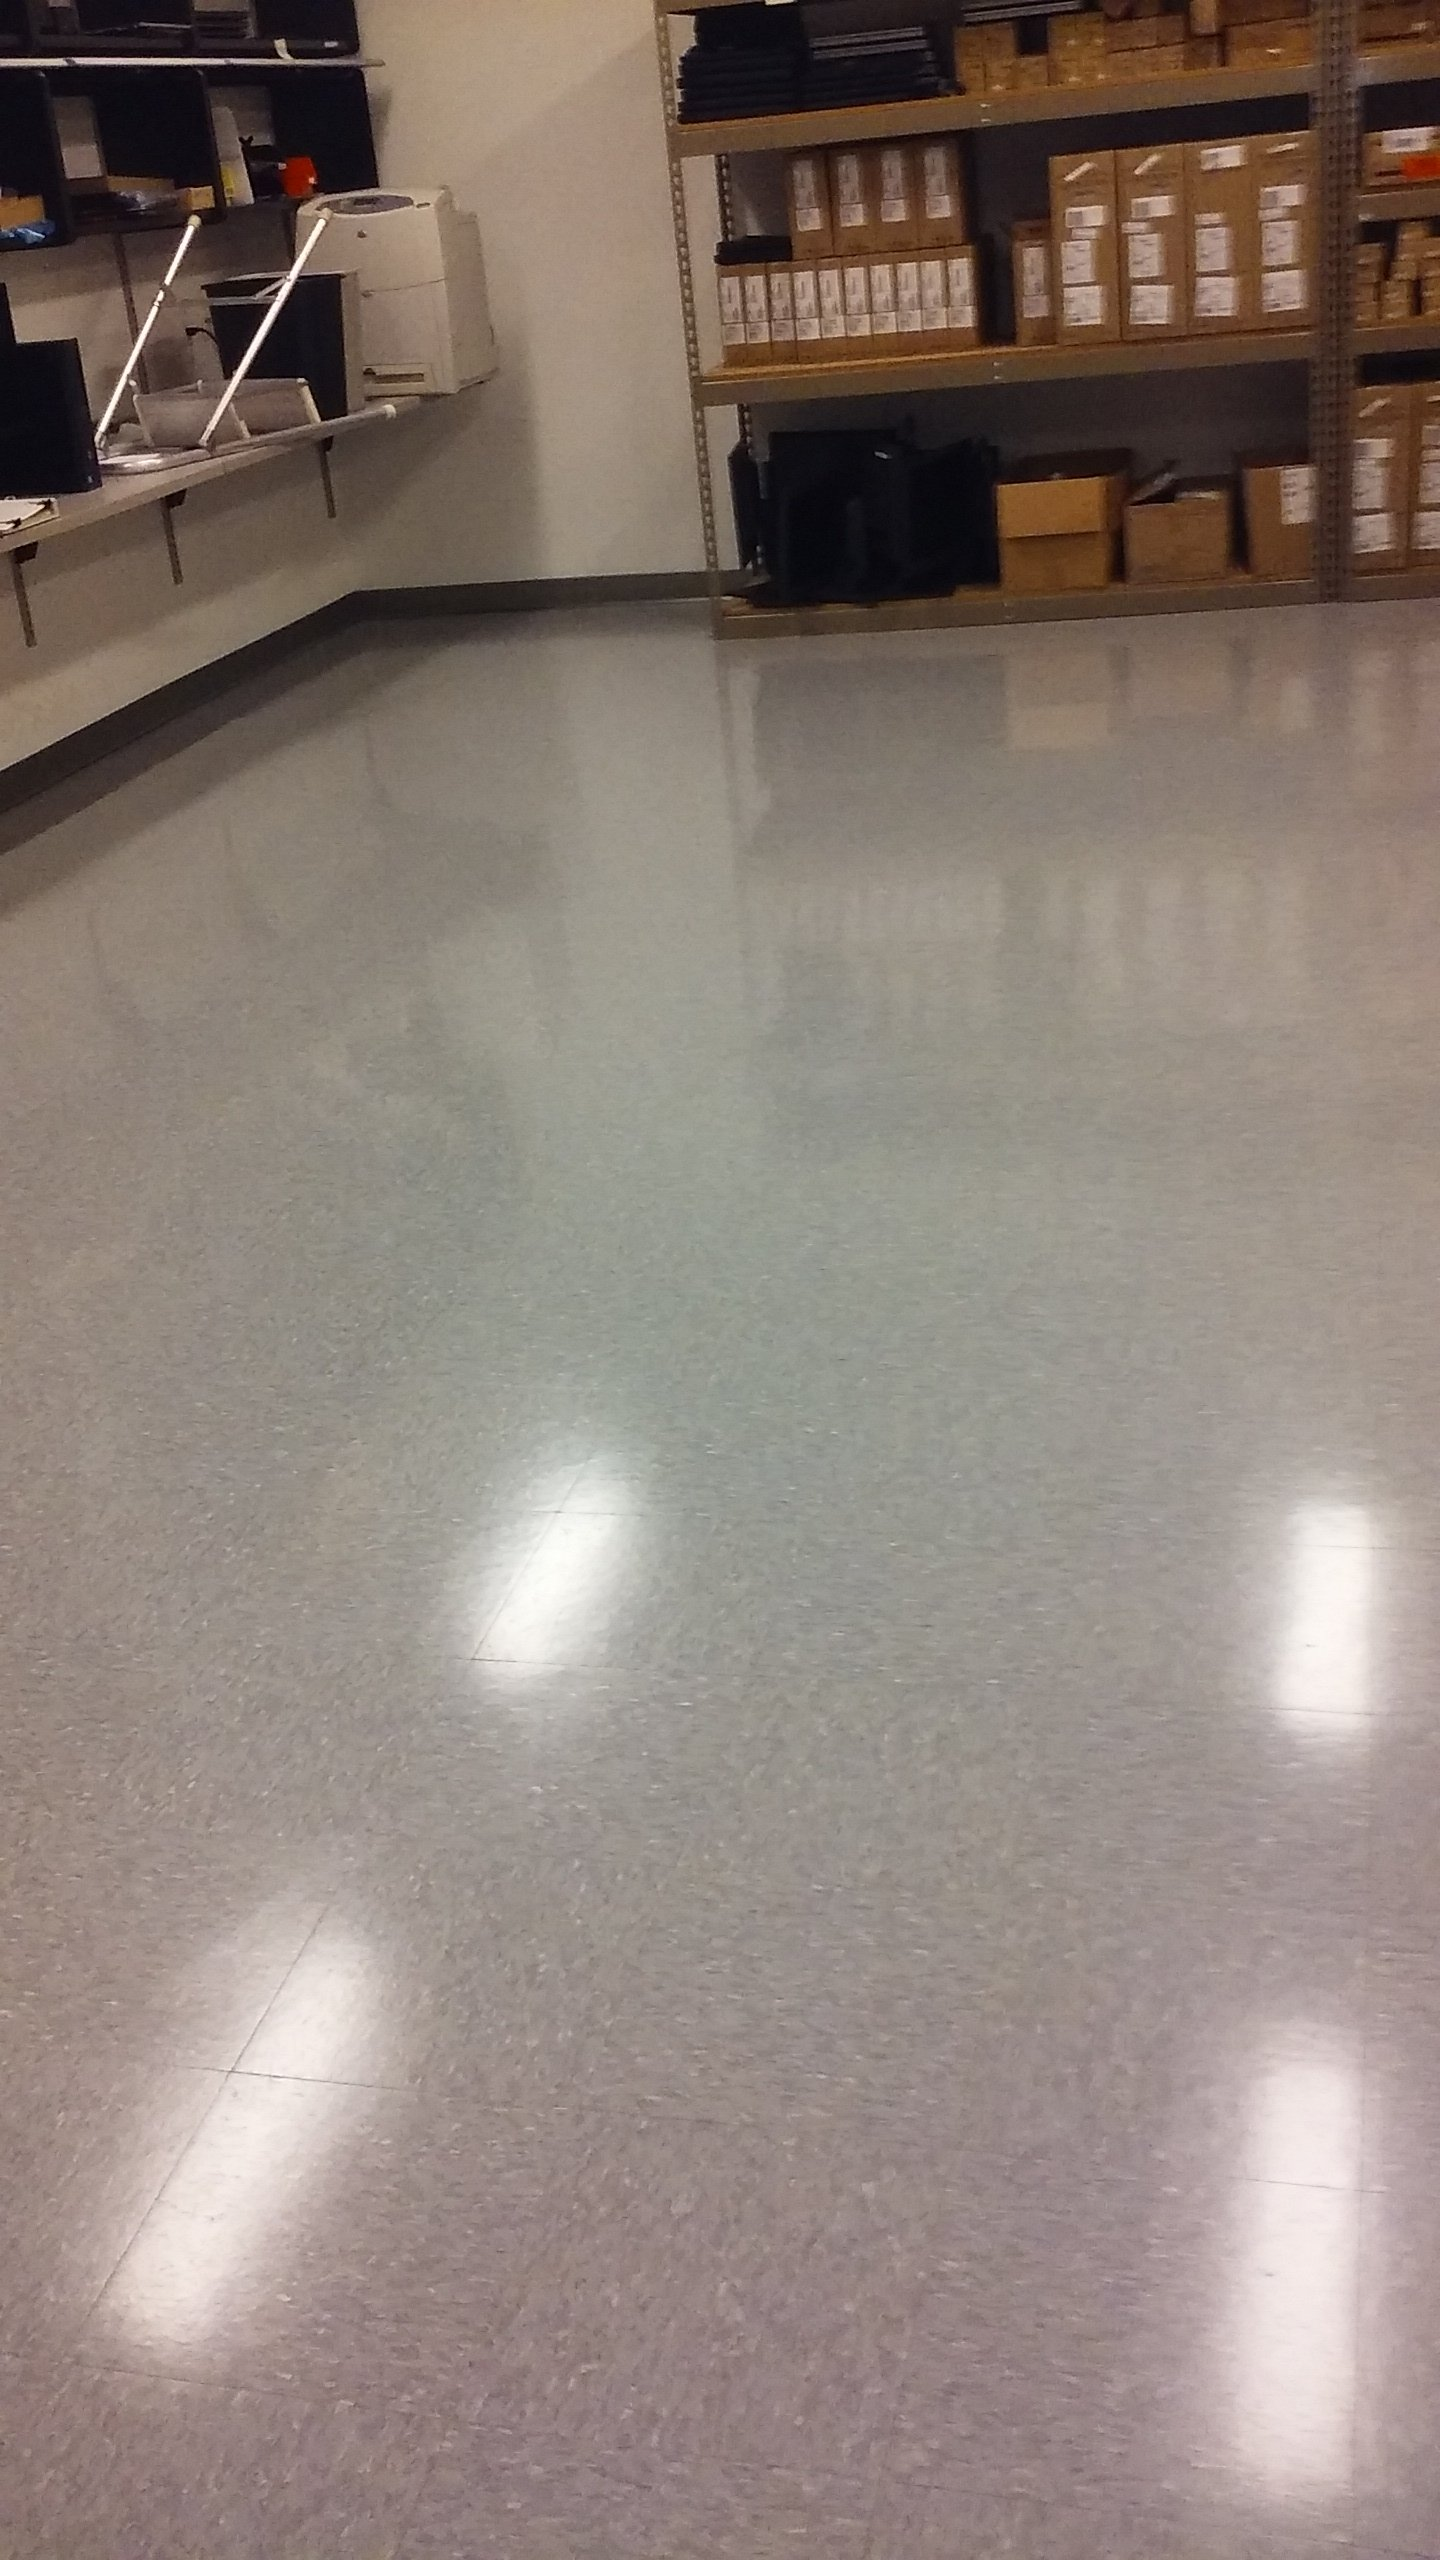 After flooring cleaning service